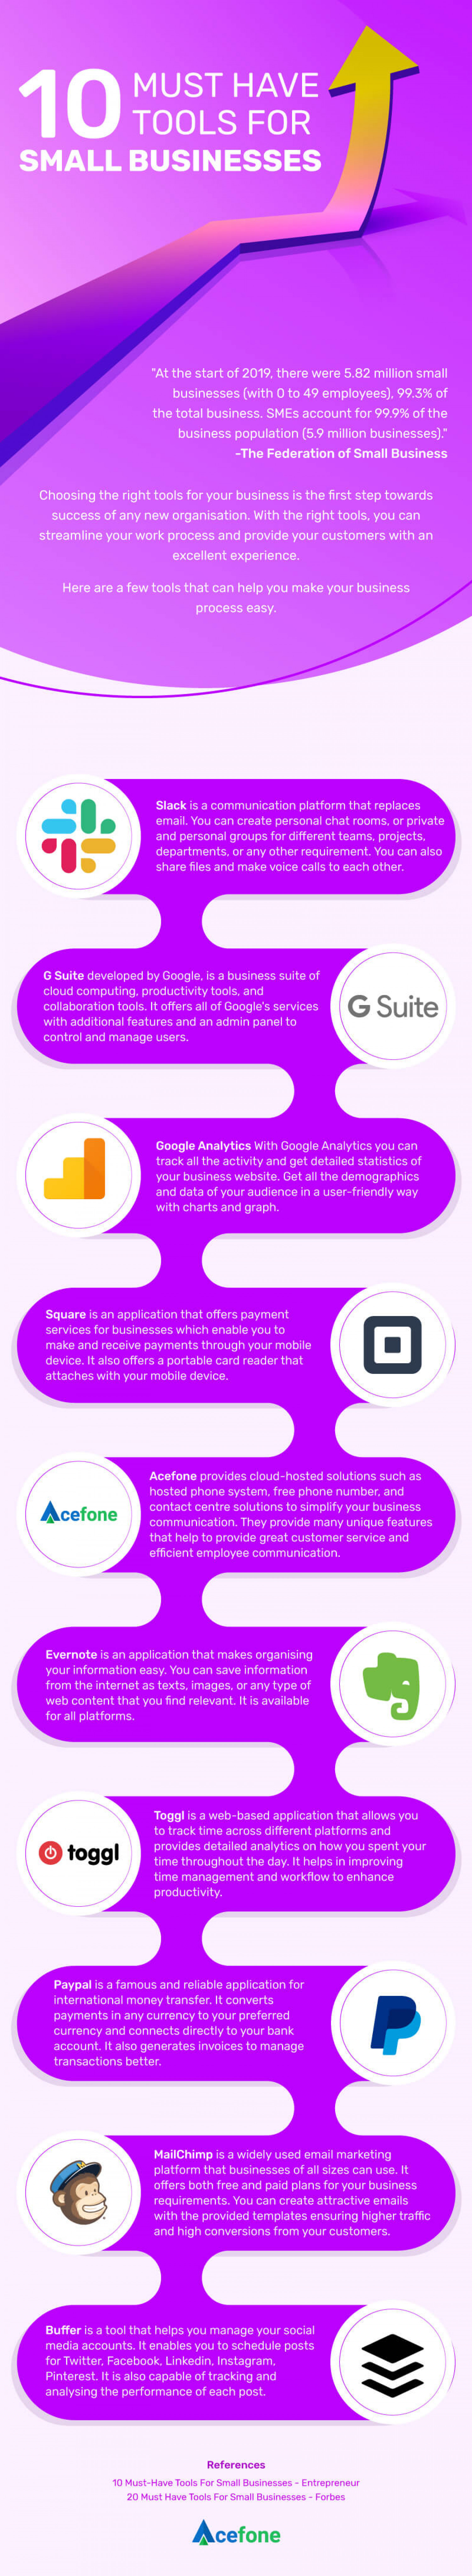 10 Must Have Tools for Small Businesses Infographic